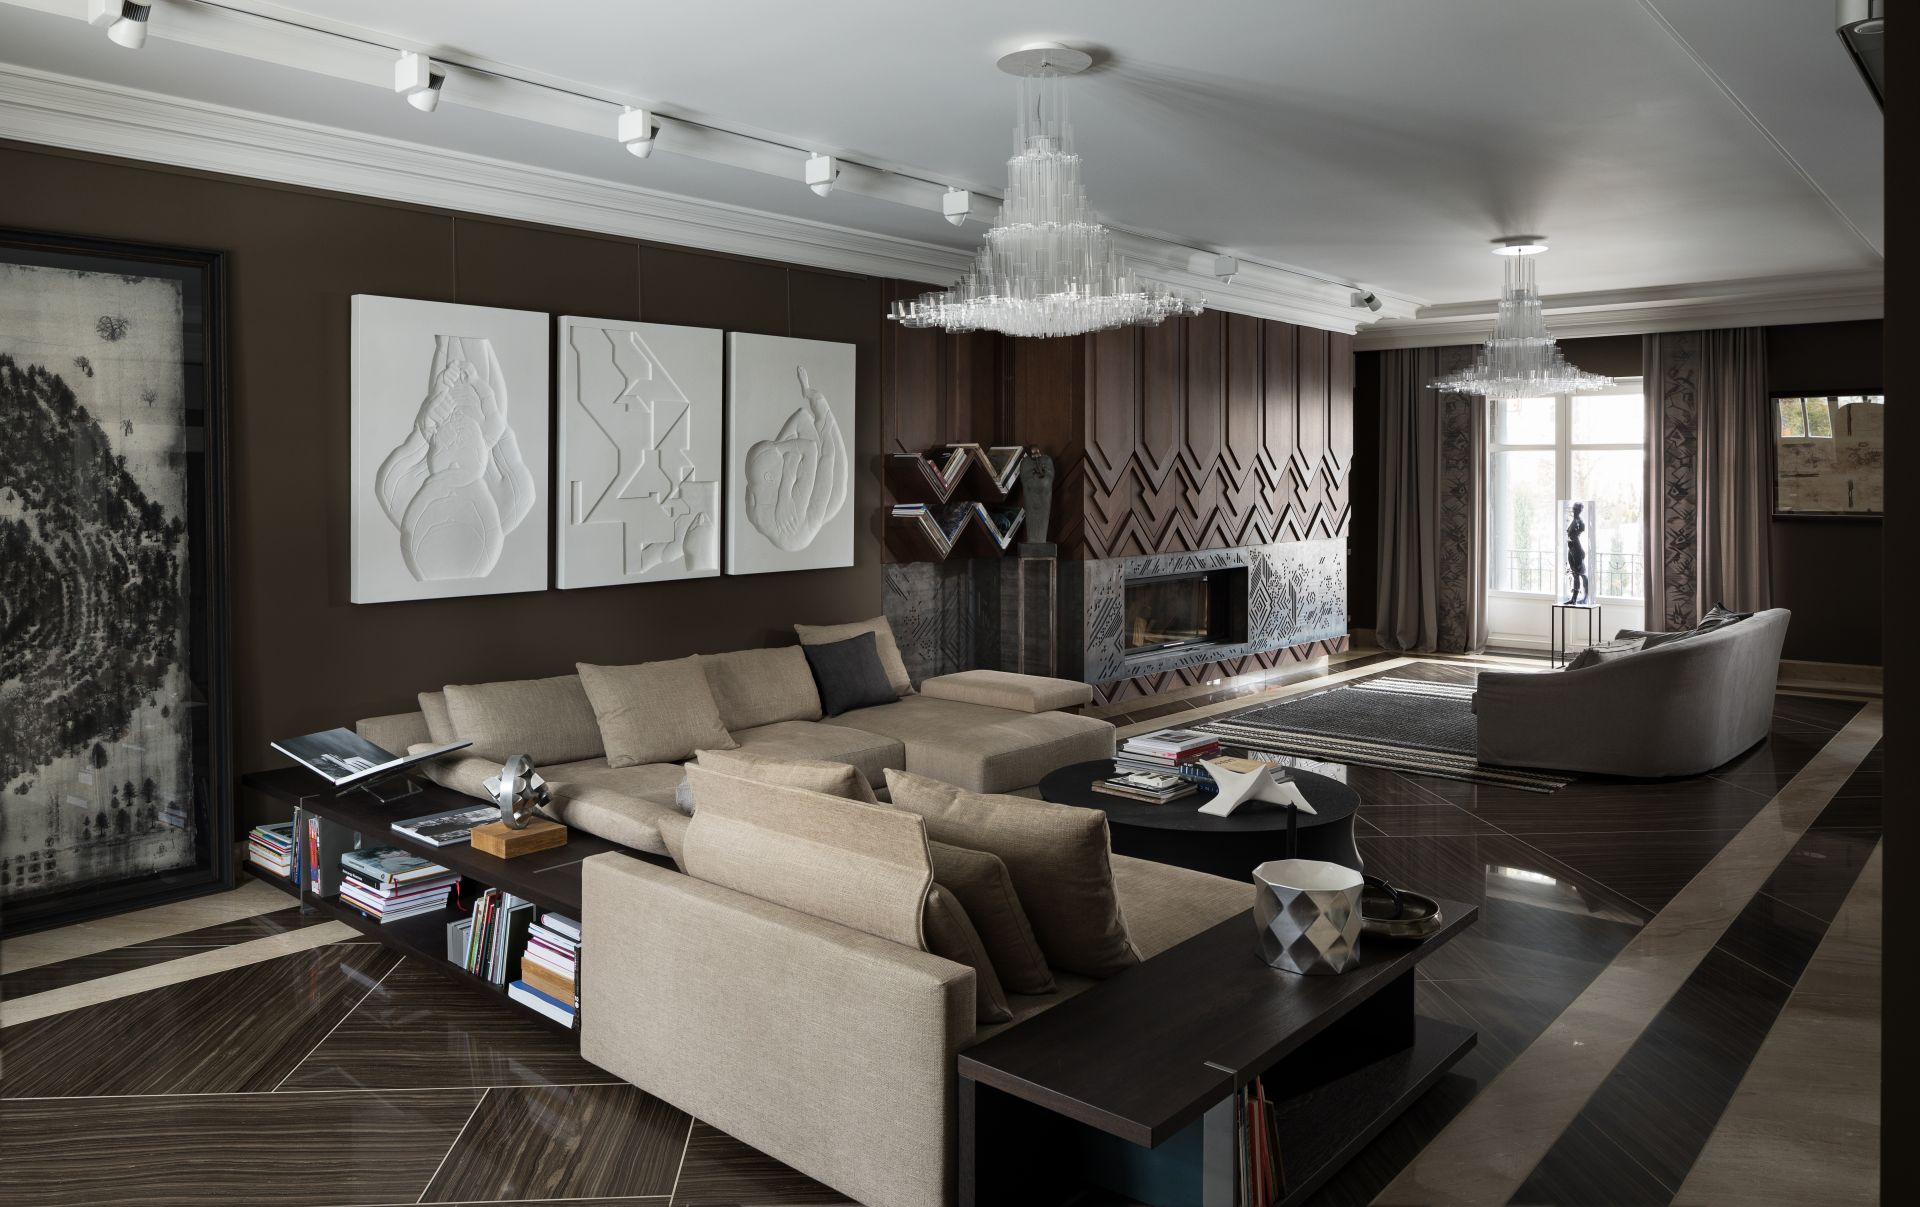 Wooden panels in a living room interior